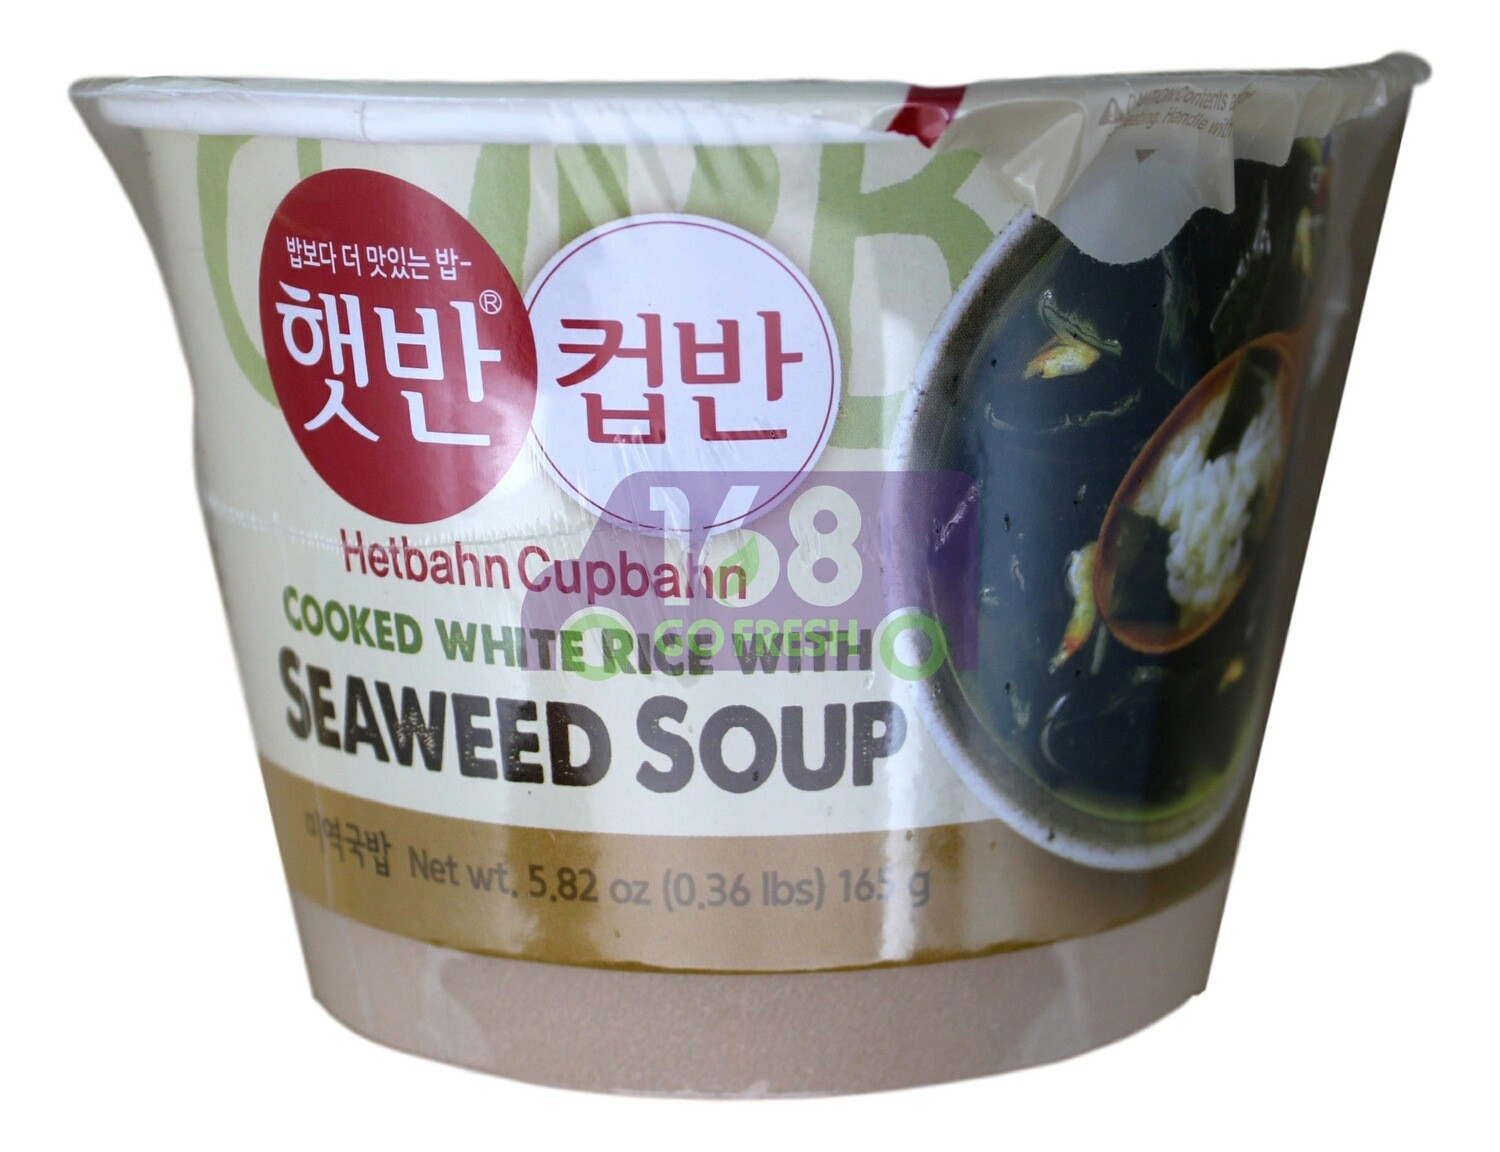 COOKED RICE WITH SEAWEED SOUP 韩国 CJ海带汤即食饭(5.82OZ)